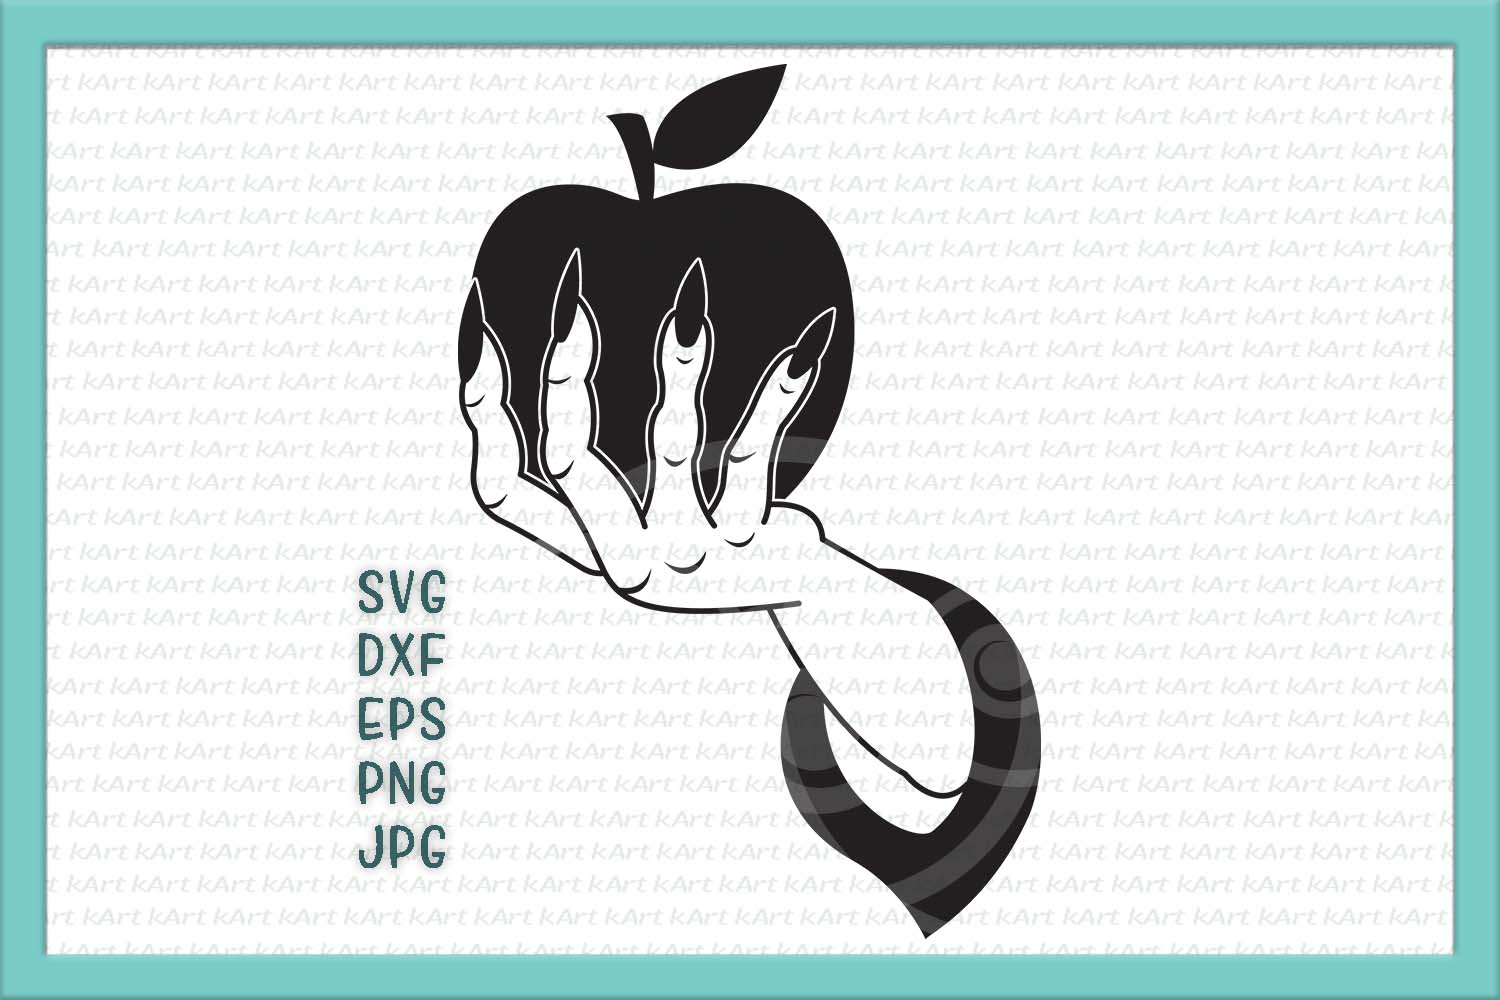 Witch hand with apple svg Halloween plotter cutting design example image 1